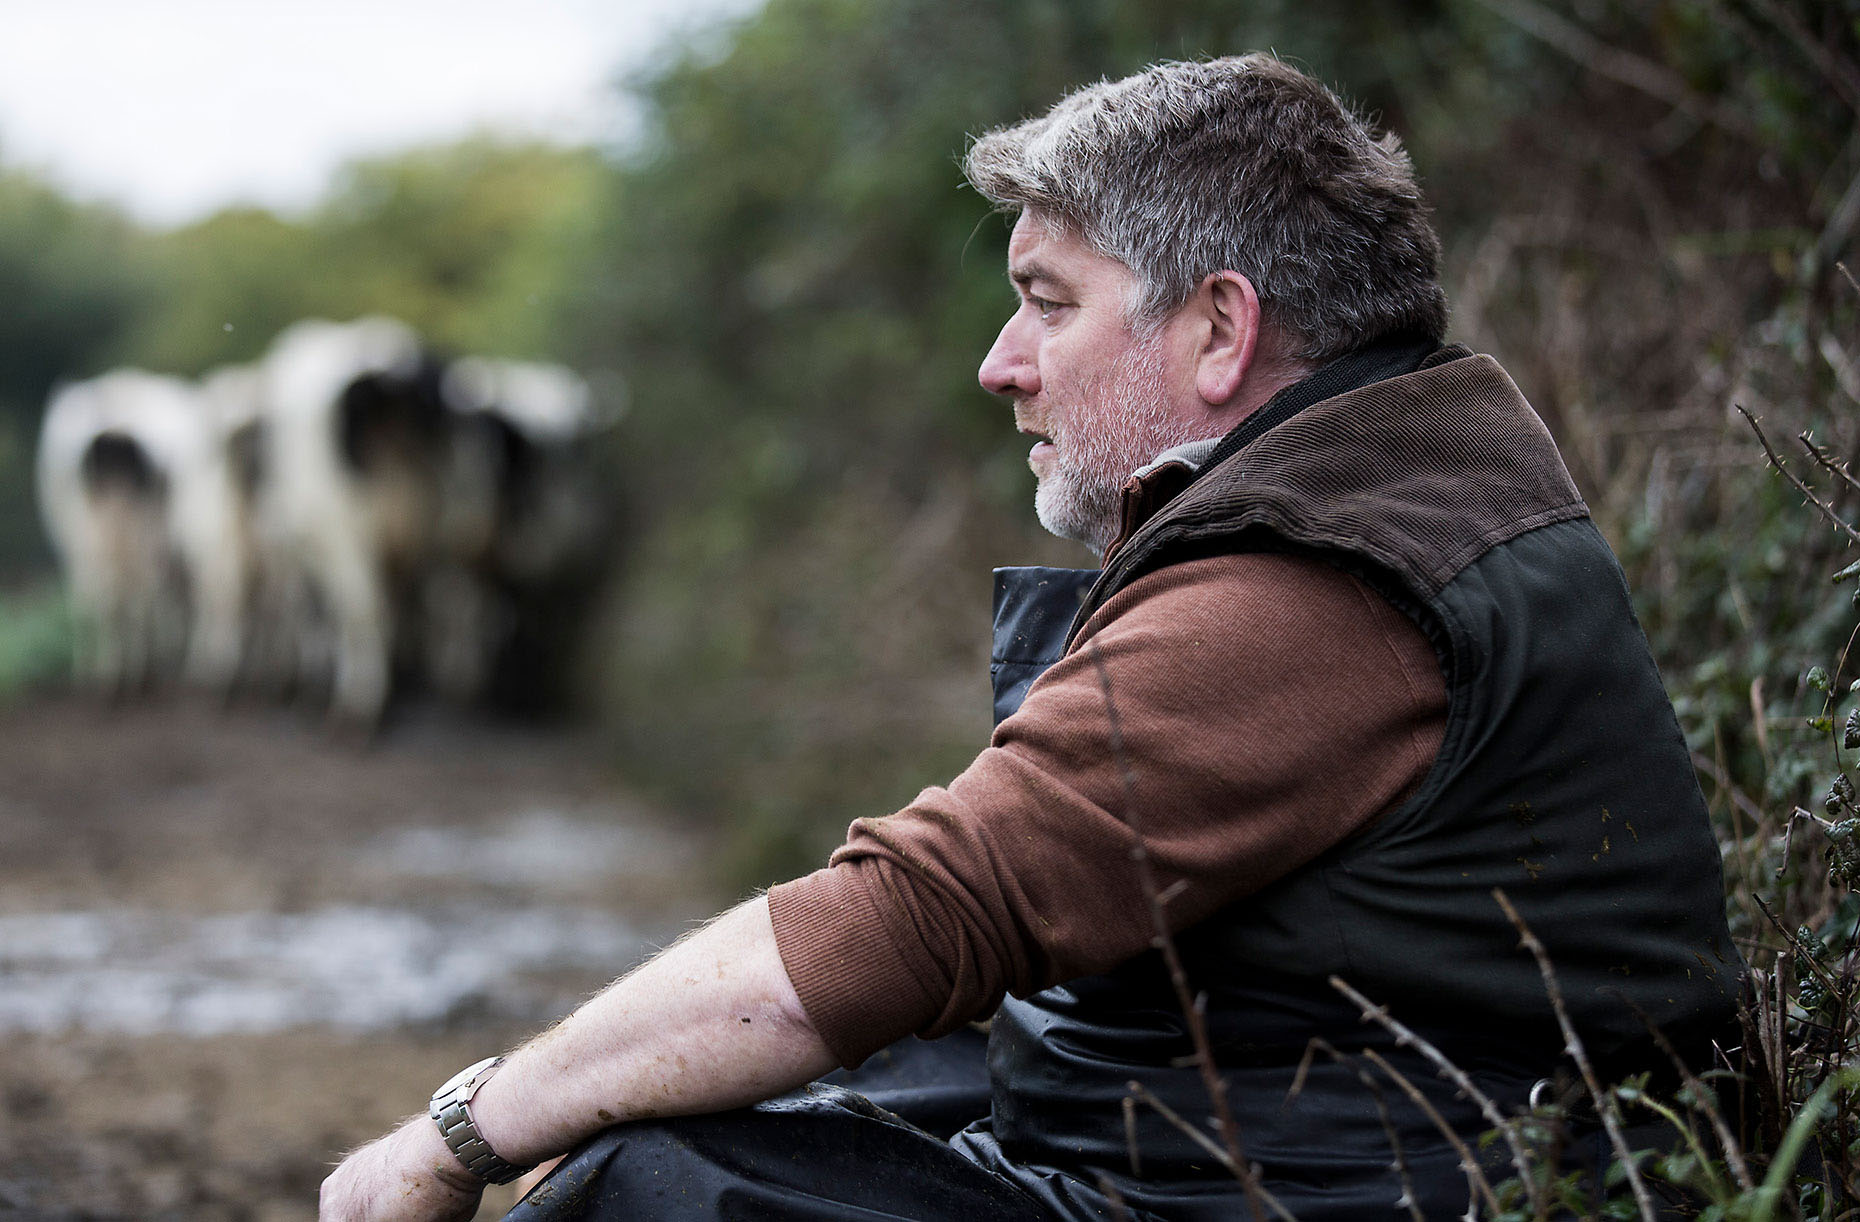 SMALLTOWN : Director:Gerard Barrett Cast:Pat Shortt